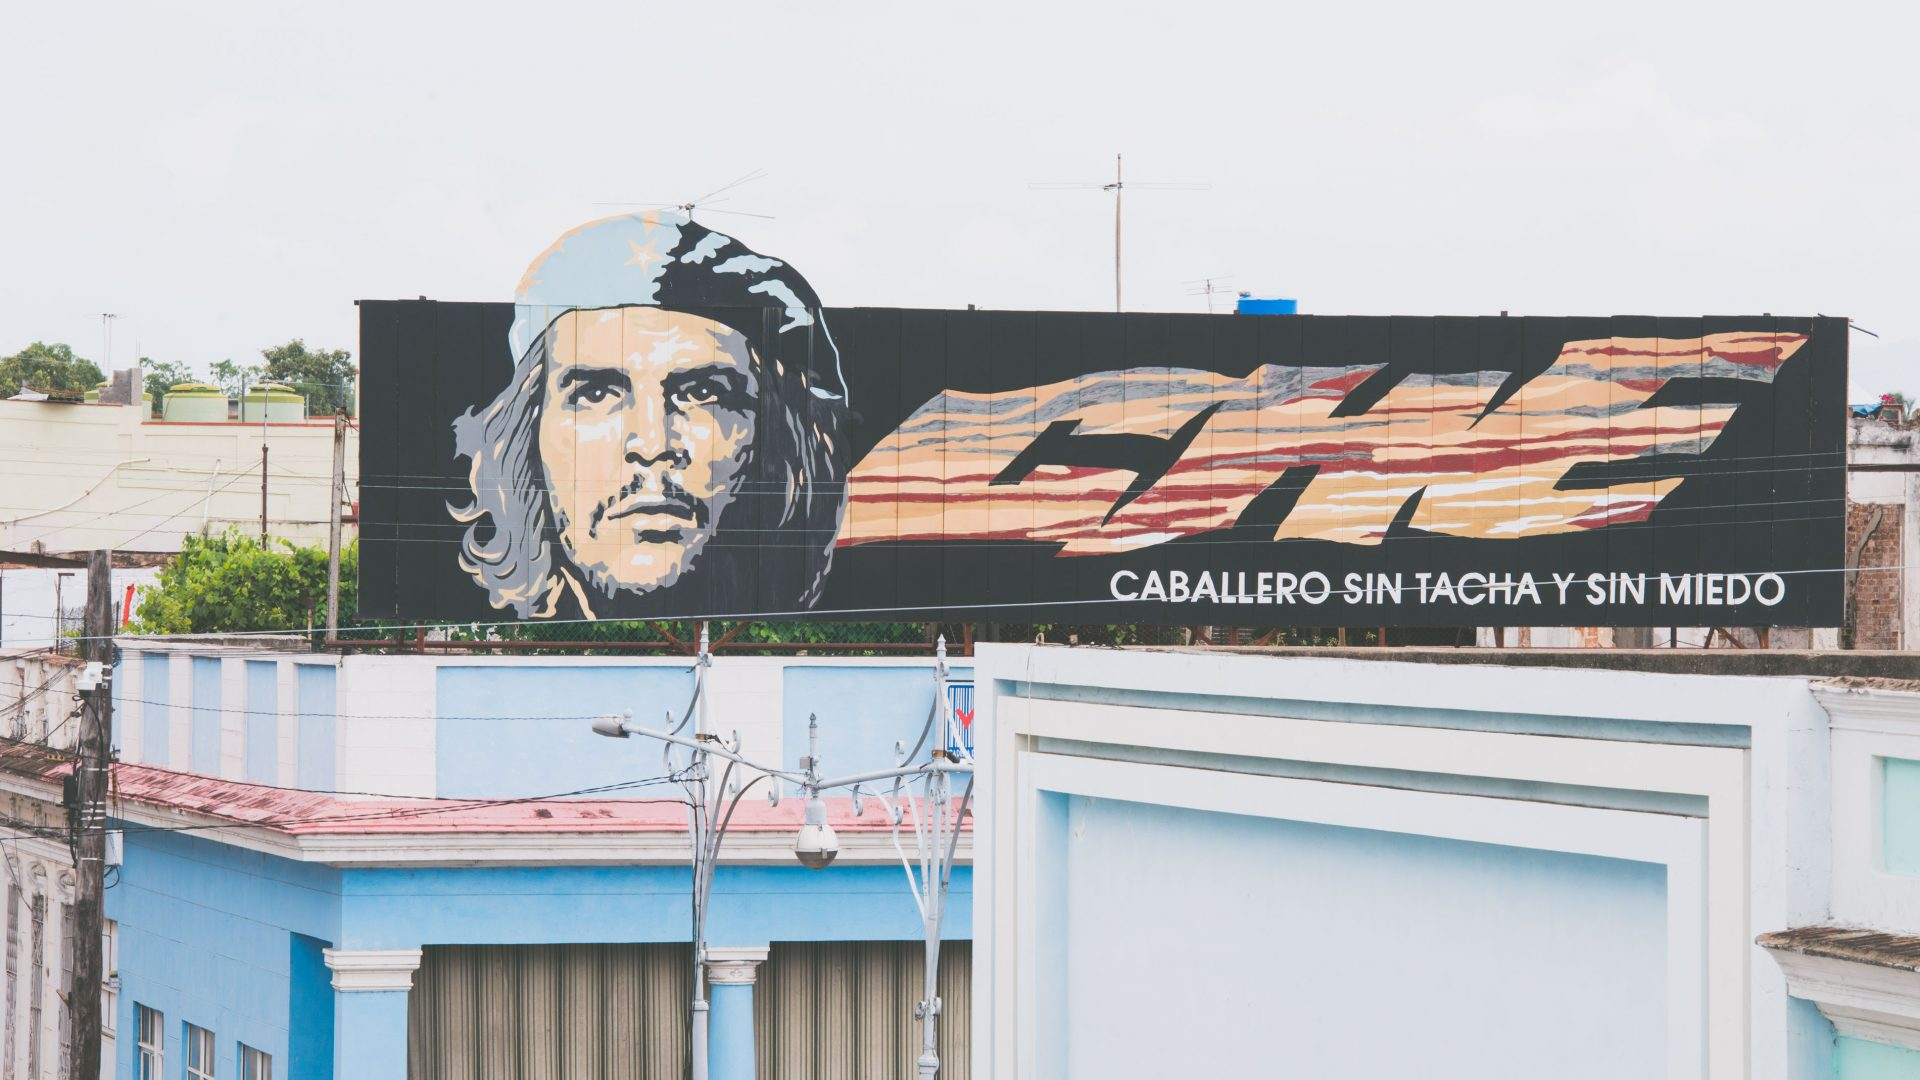 A sign showing the face of Che Guevara in Cuba.